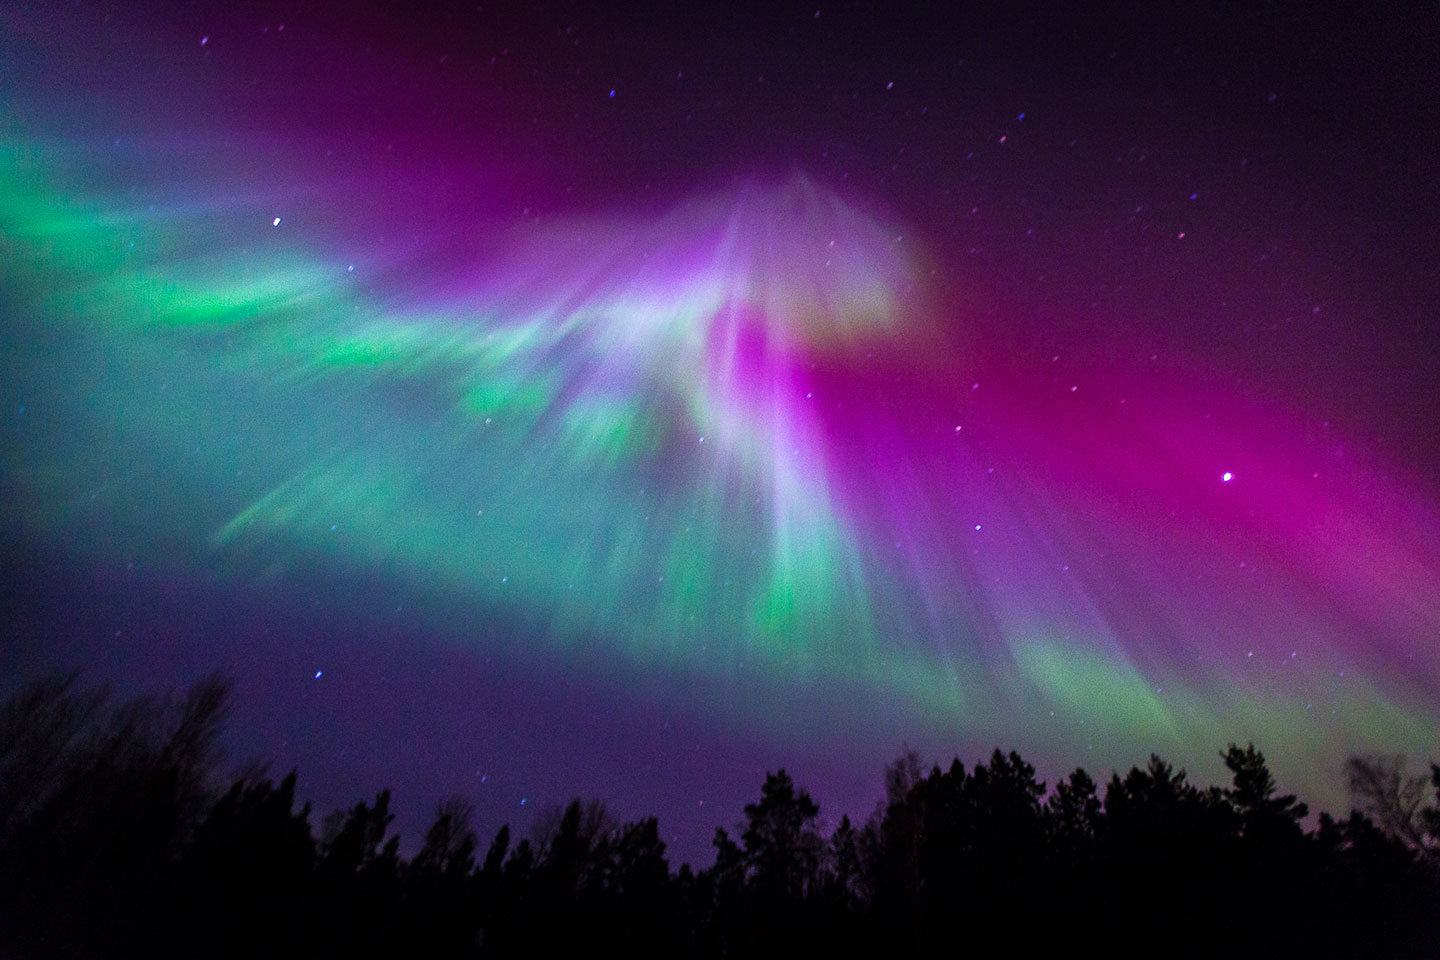 purple aurora borealis wallpapers x - photo #37